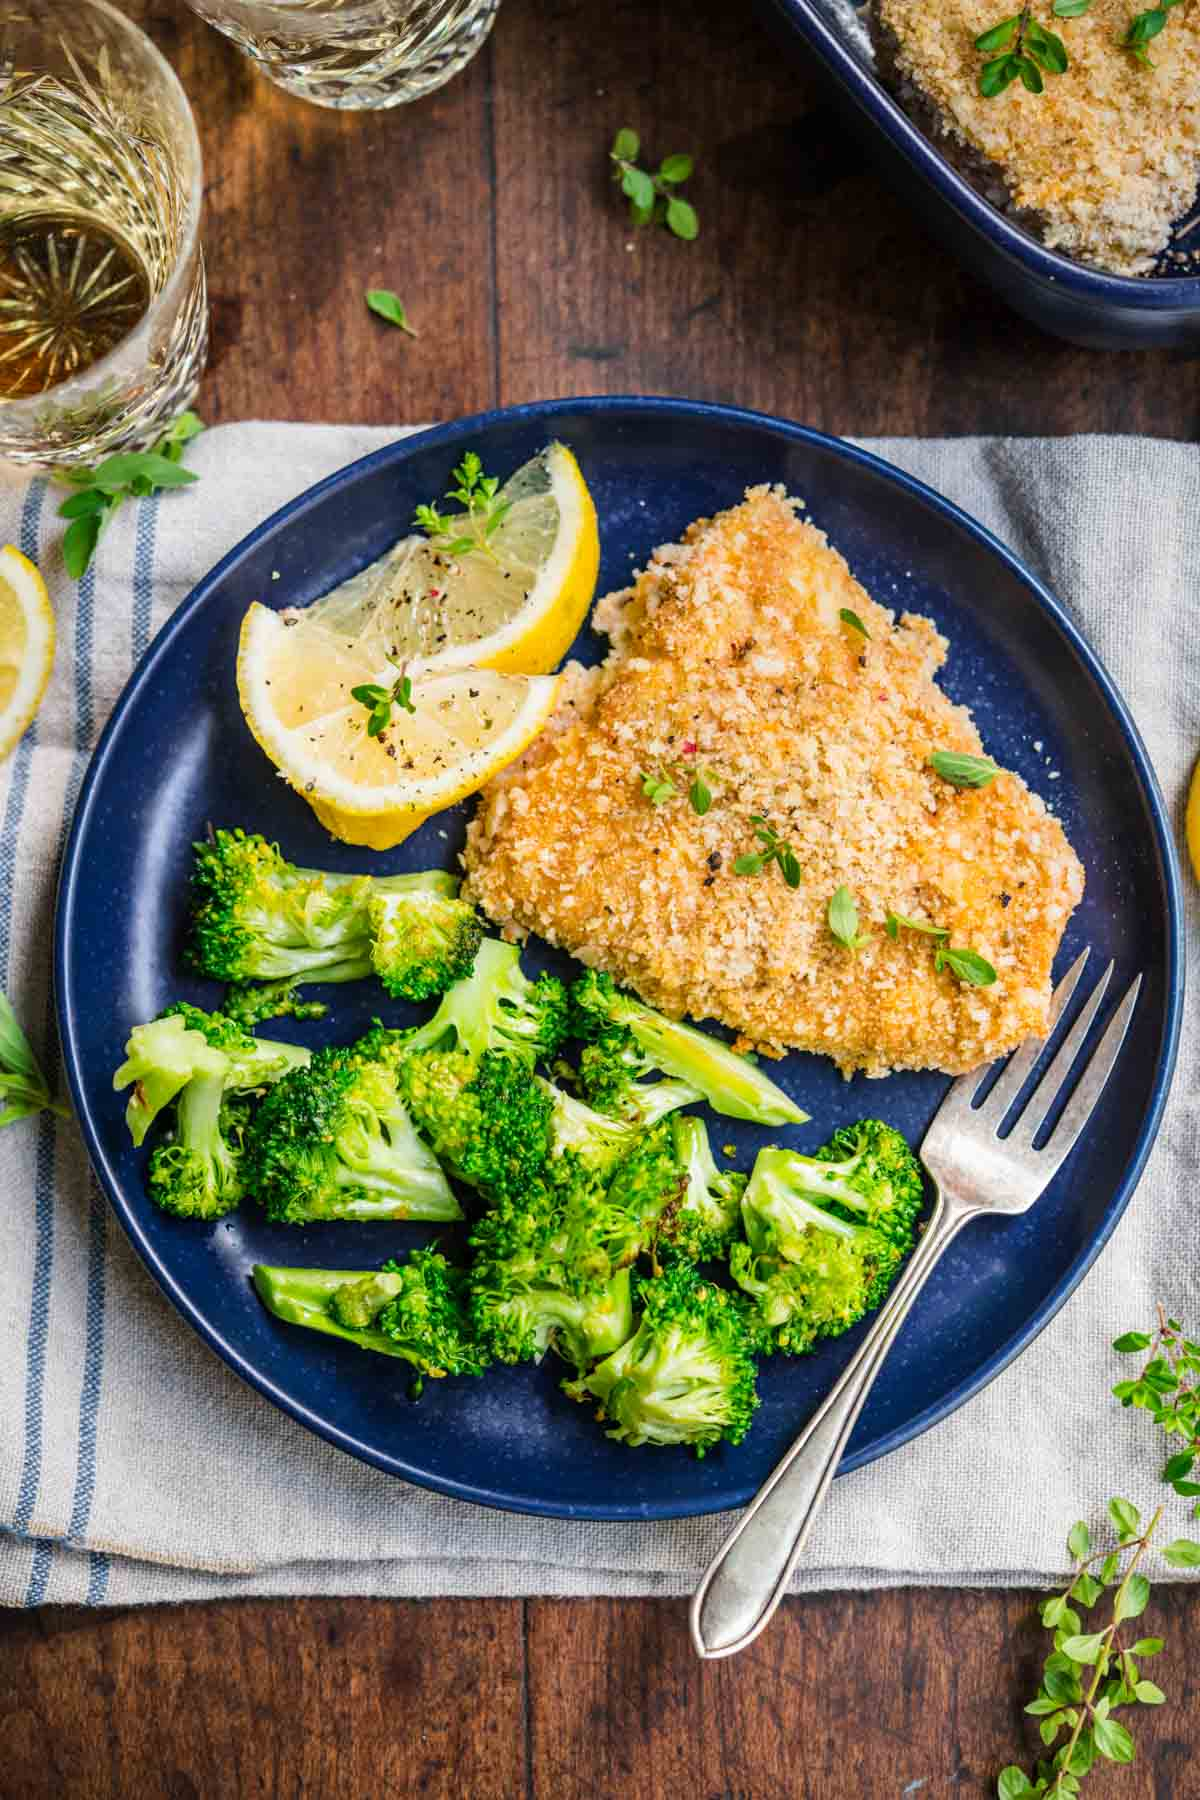 Baked Cod with lemon wedge garnish on plate with broccoli and fork